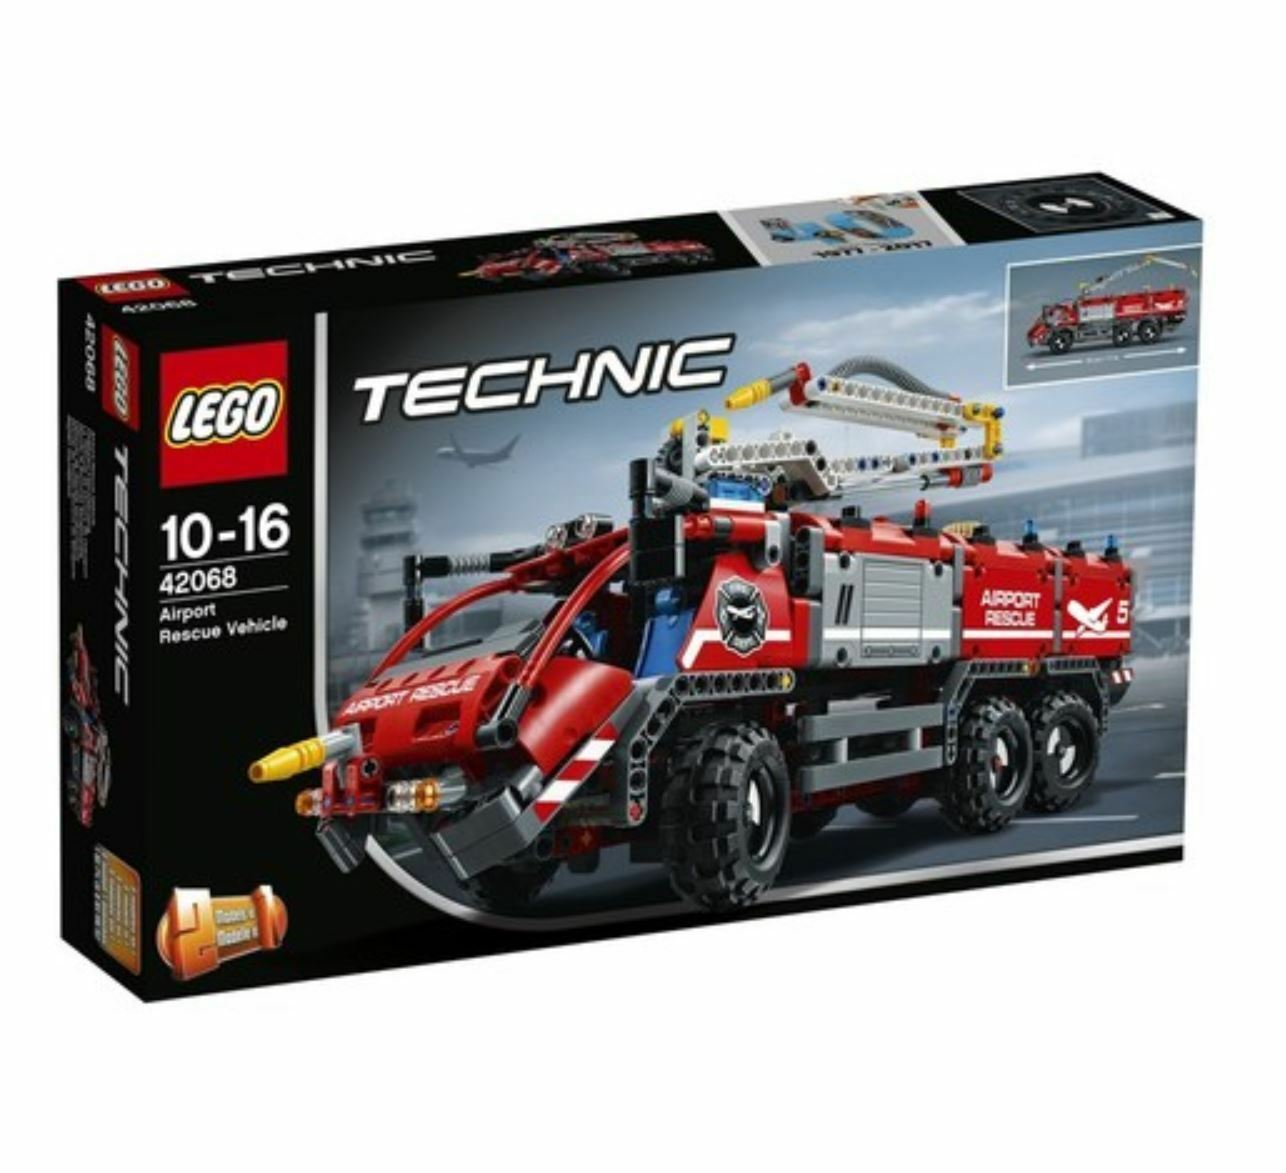 [LEGO]  Technic Airport Rescue Vehicle 42068 2017 Version Free Shipping